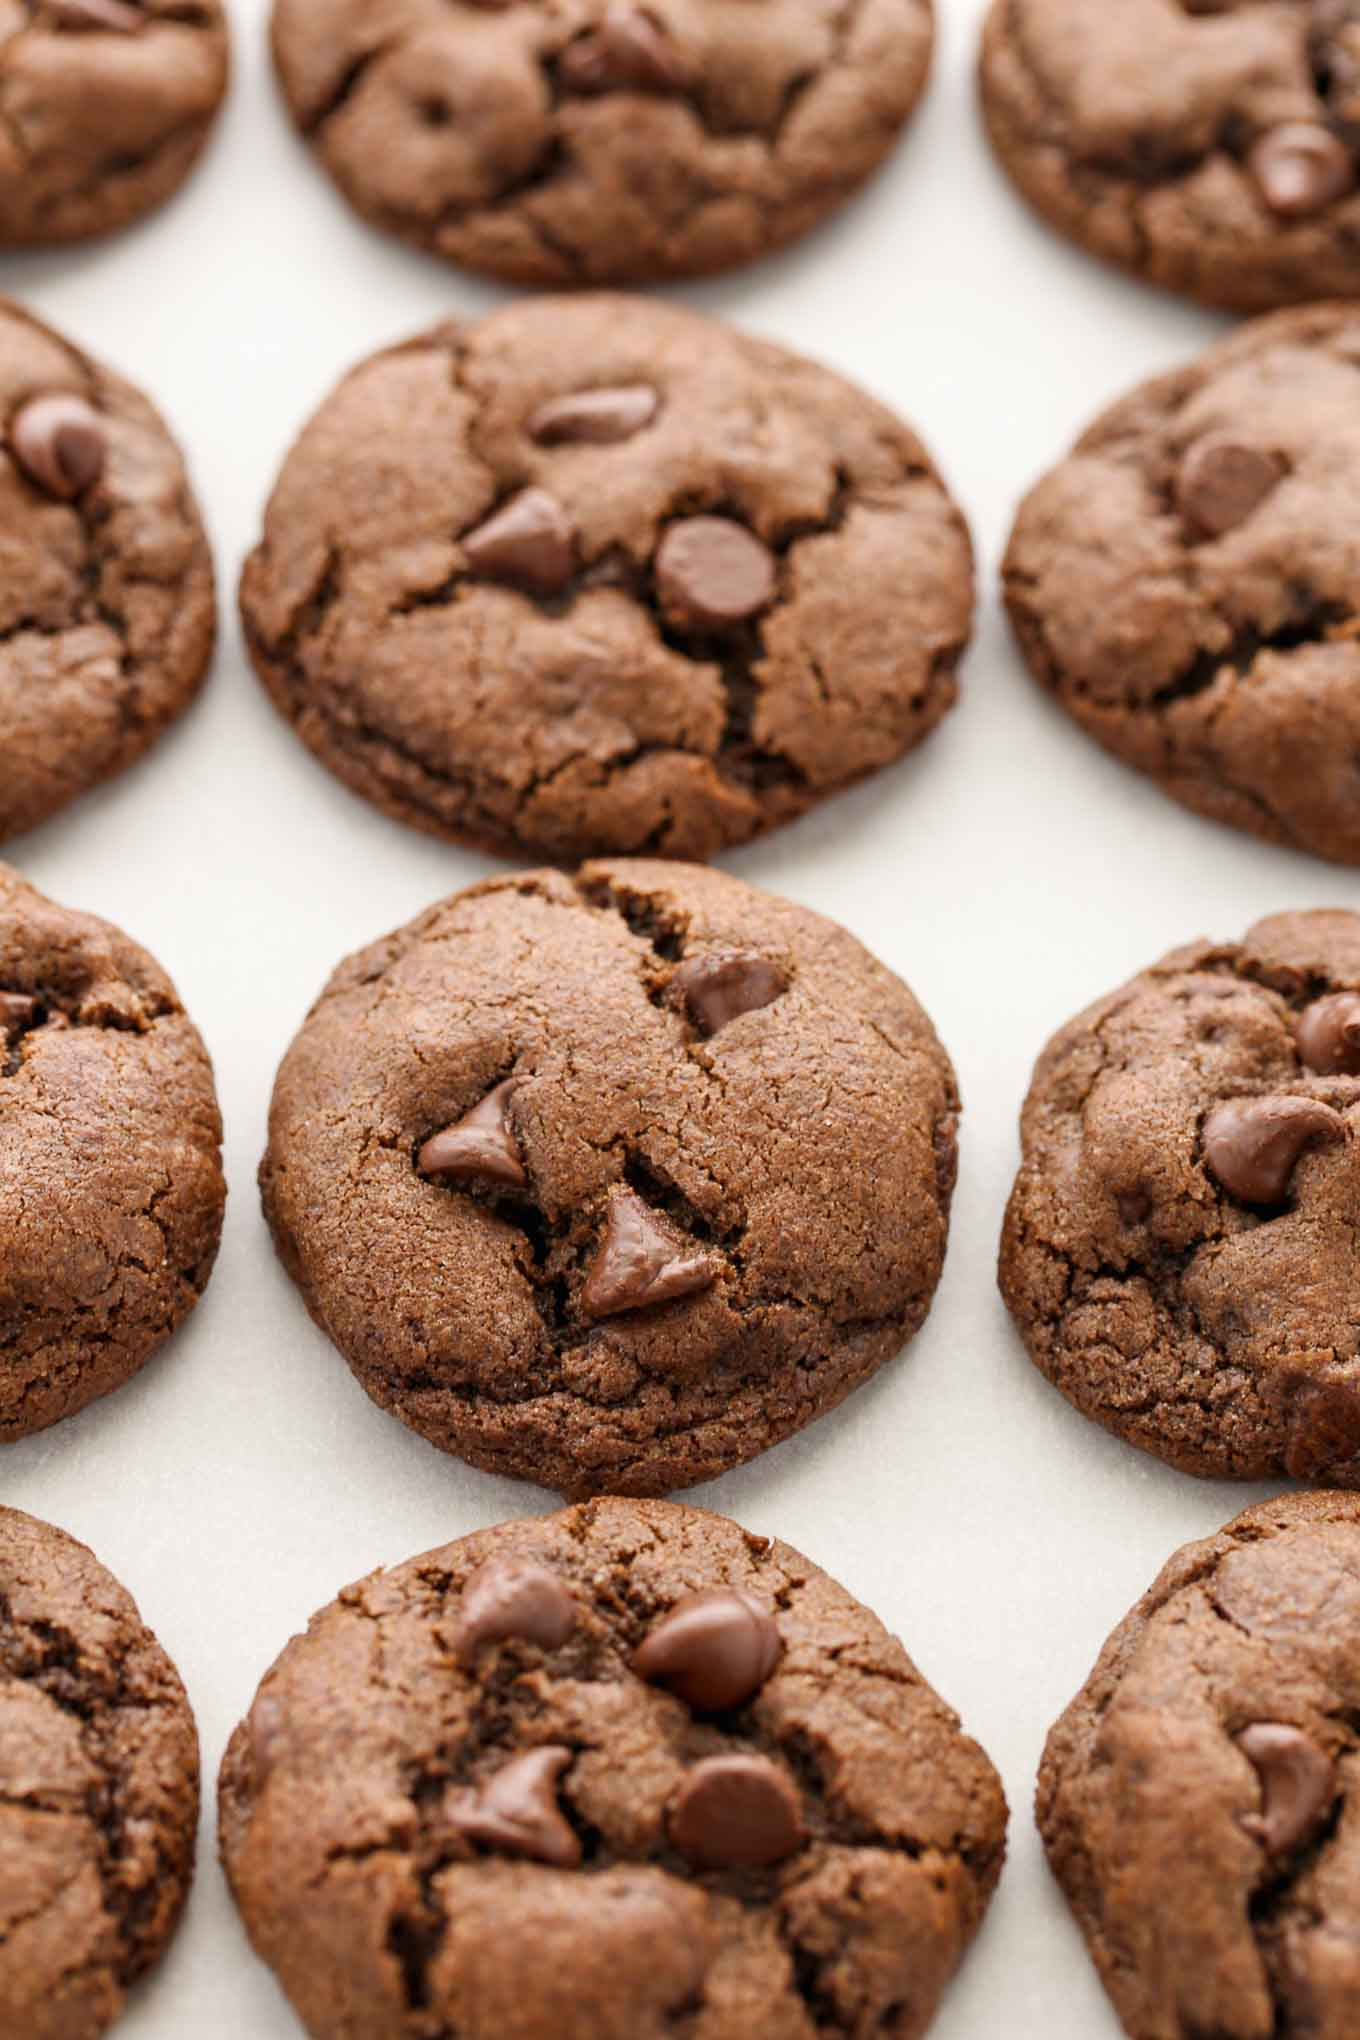 Soft chocolate cookies filled with chocolate chips in every bite. These Double Chocolate Chip Cookies are the perfect dessert for chocolate lovers!